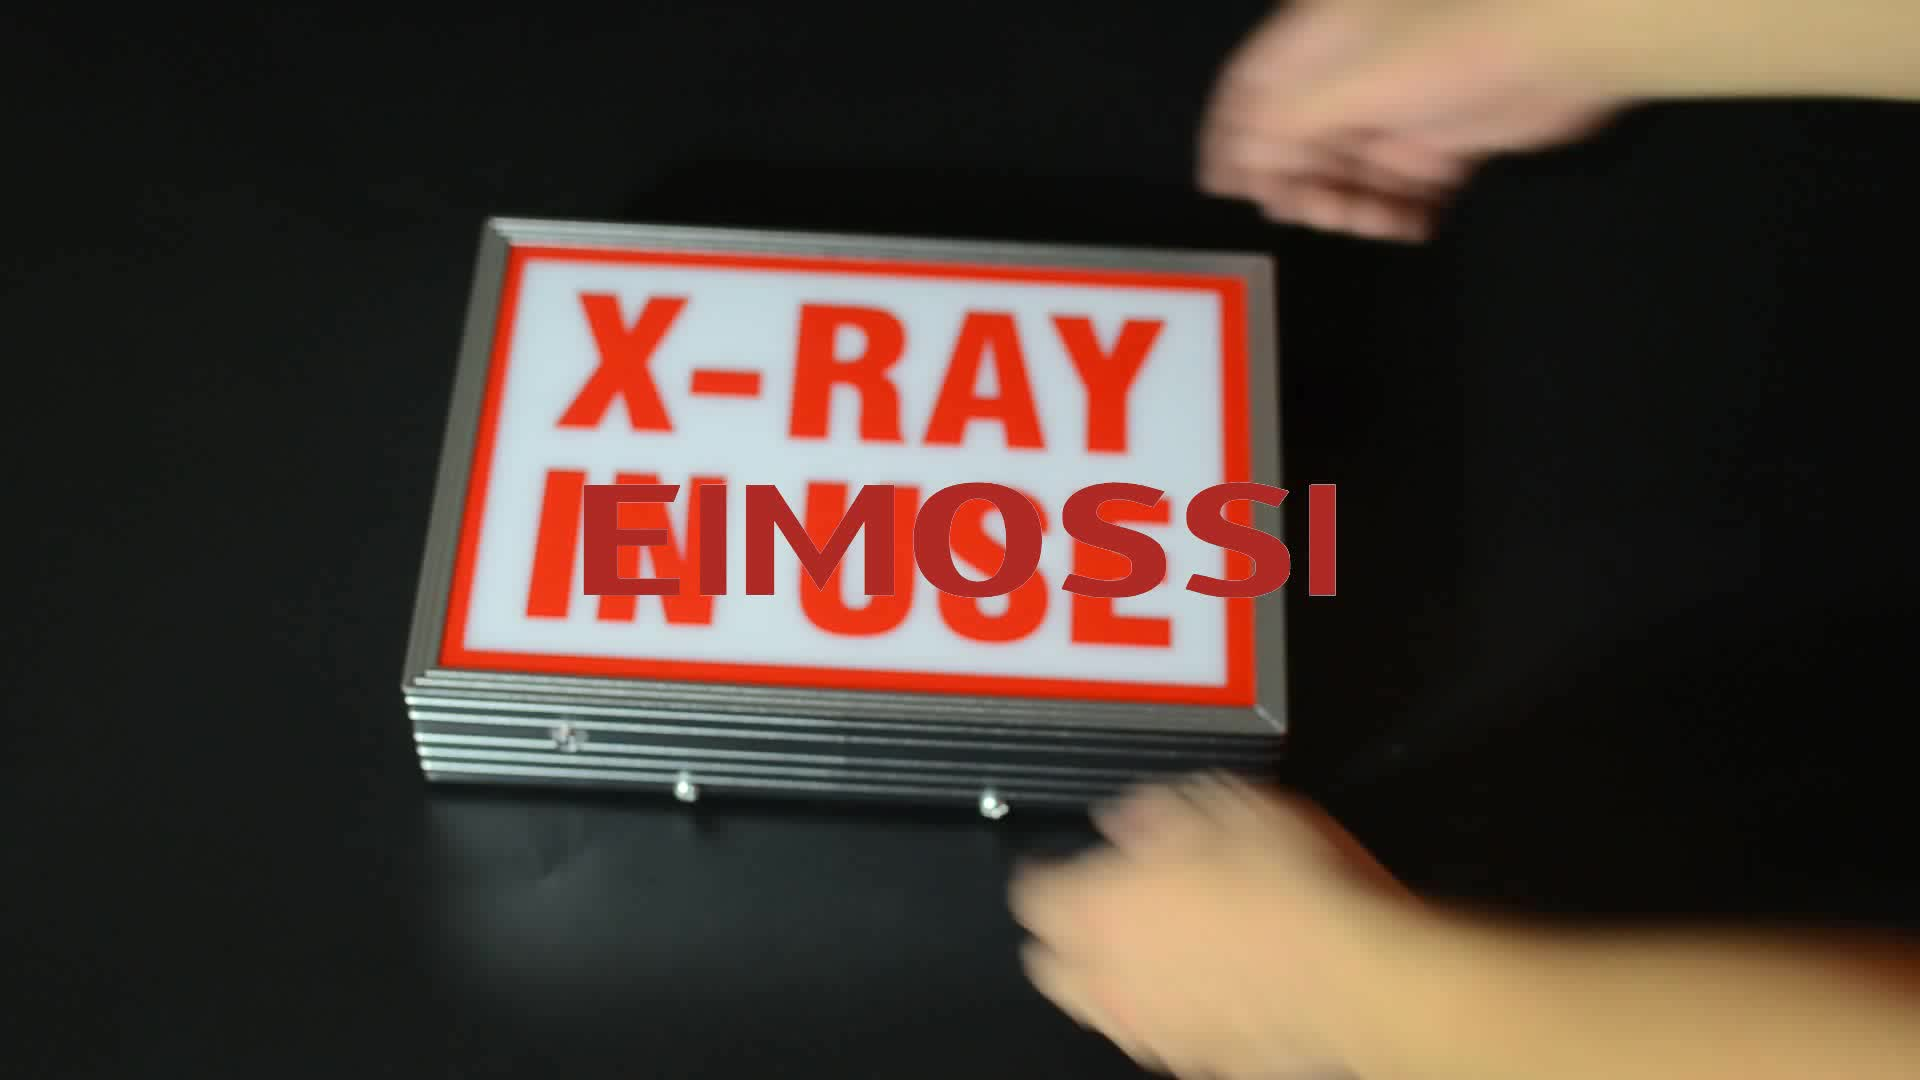 x-ray in use led warning sign